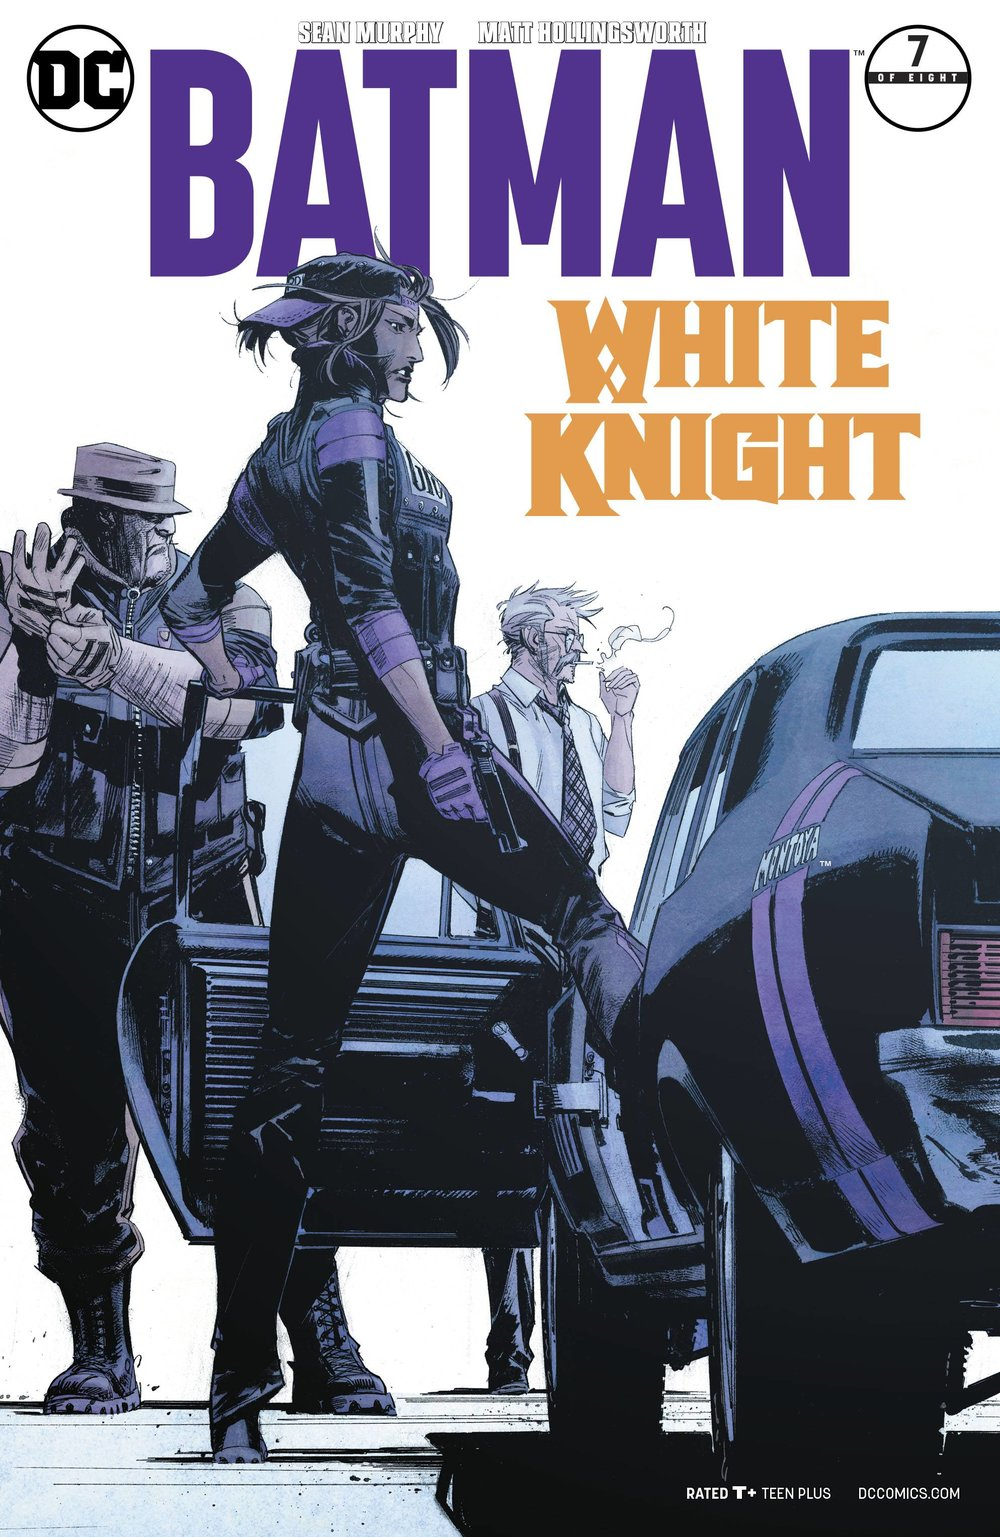 BATMAN WHITE KNIGHT 7 of 8 VAR ED.jpg